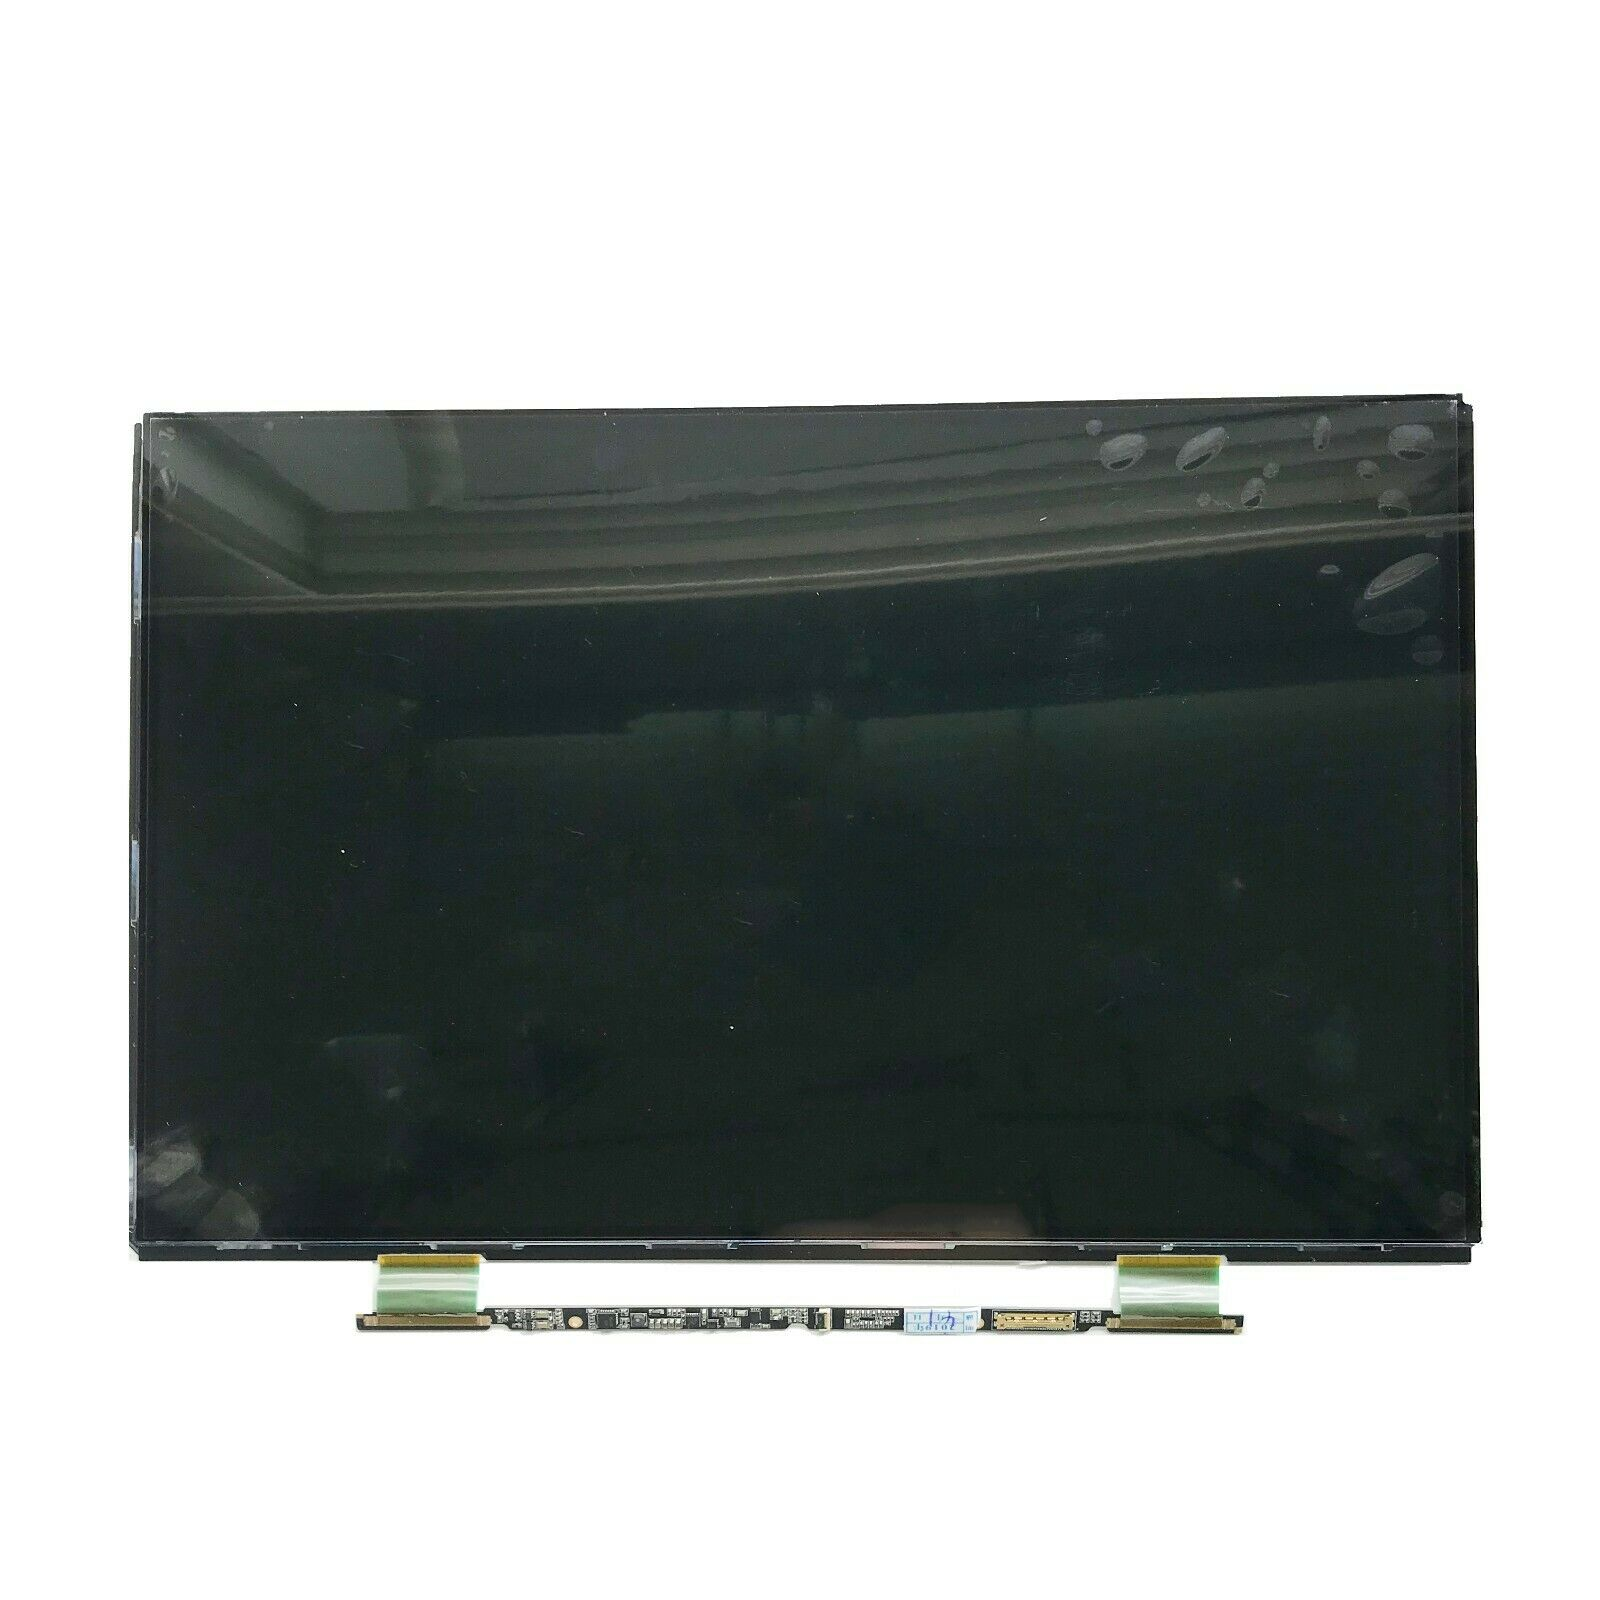 LPPLY 13.3 inch LCD Display Matrix 1440 x 900 For MacBook Air A1369 A1466 LCD Screen Panel 2010 to 2017 Year